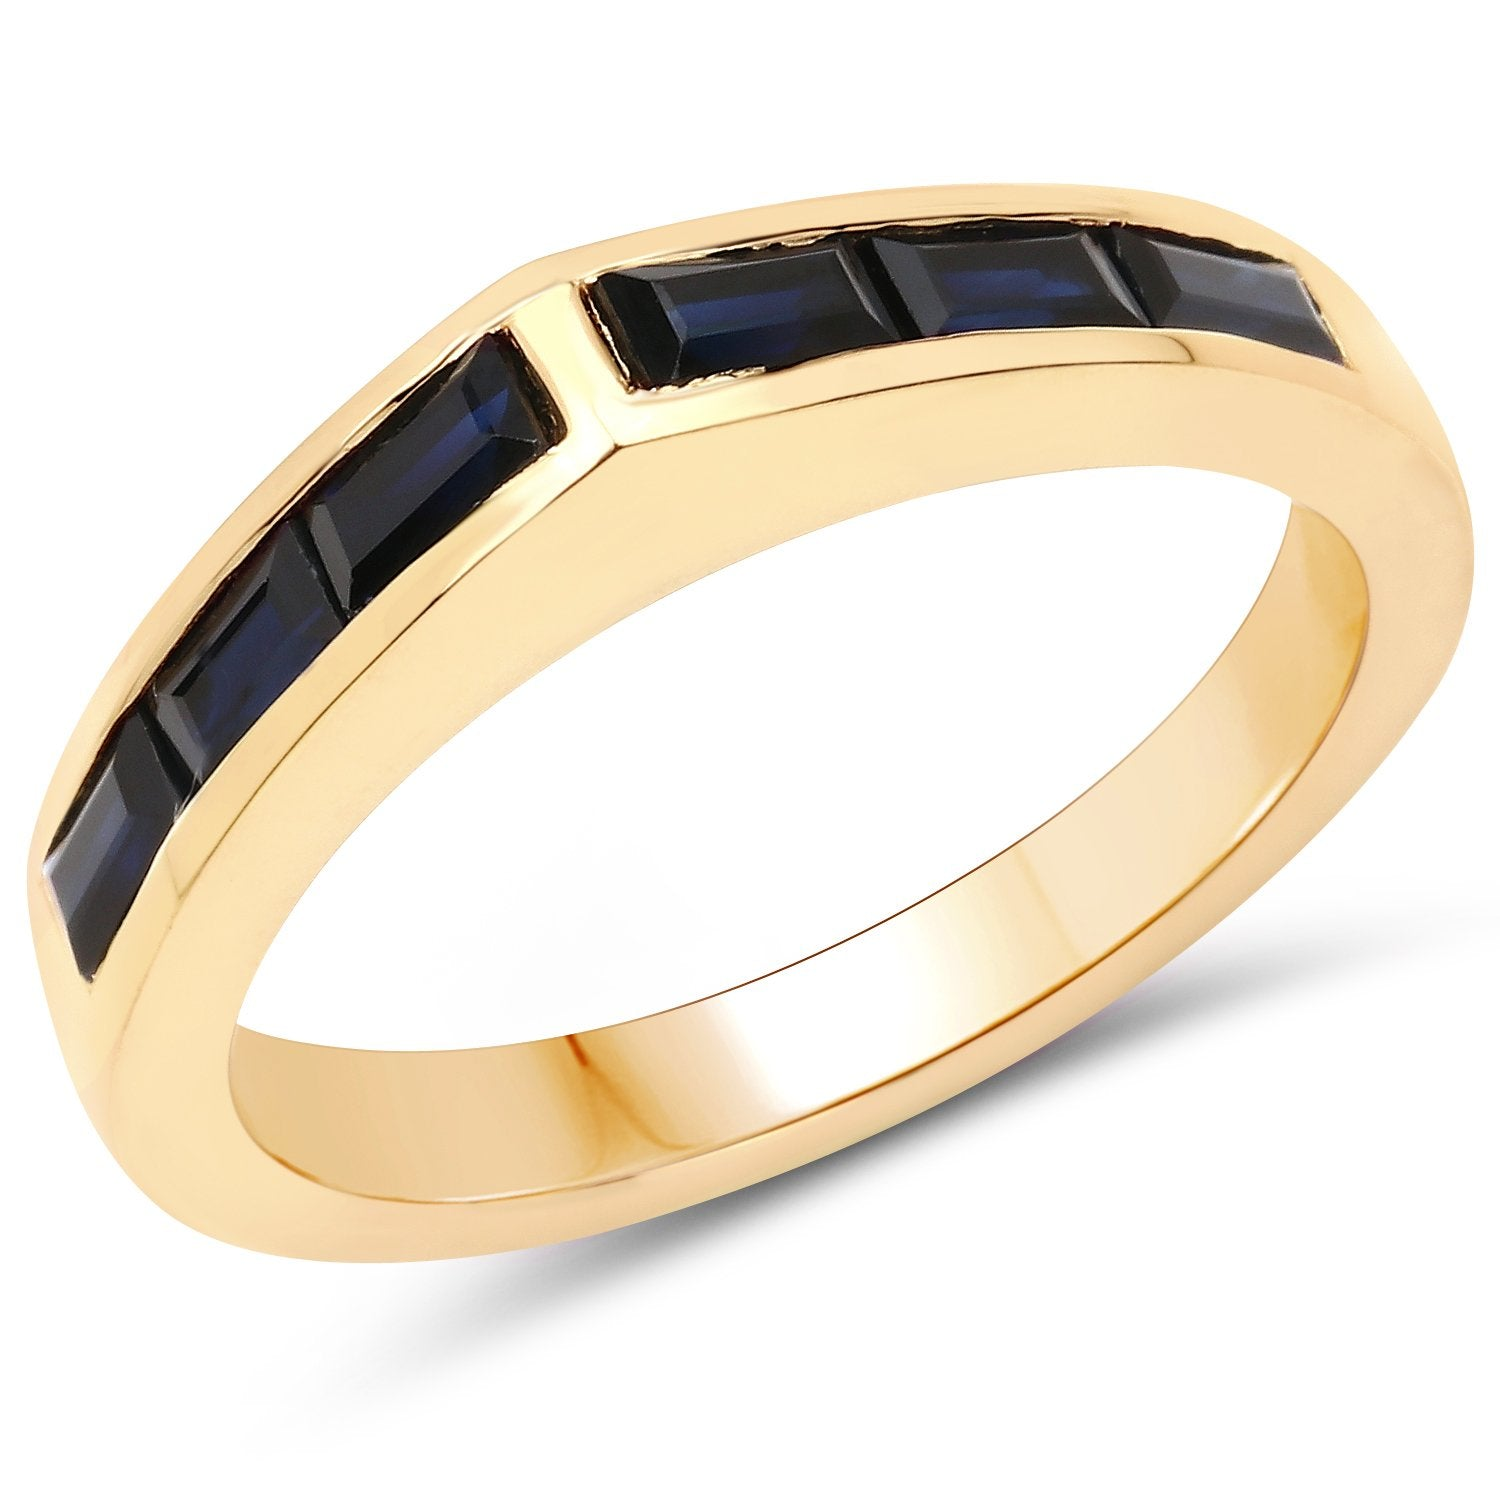 LoveHuang 0.98 Carats Genuine Dark Blue Sapphire Ring Solid .925 Sterling Silver With 18KT Yellow Gold Plating